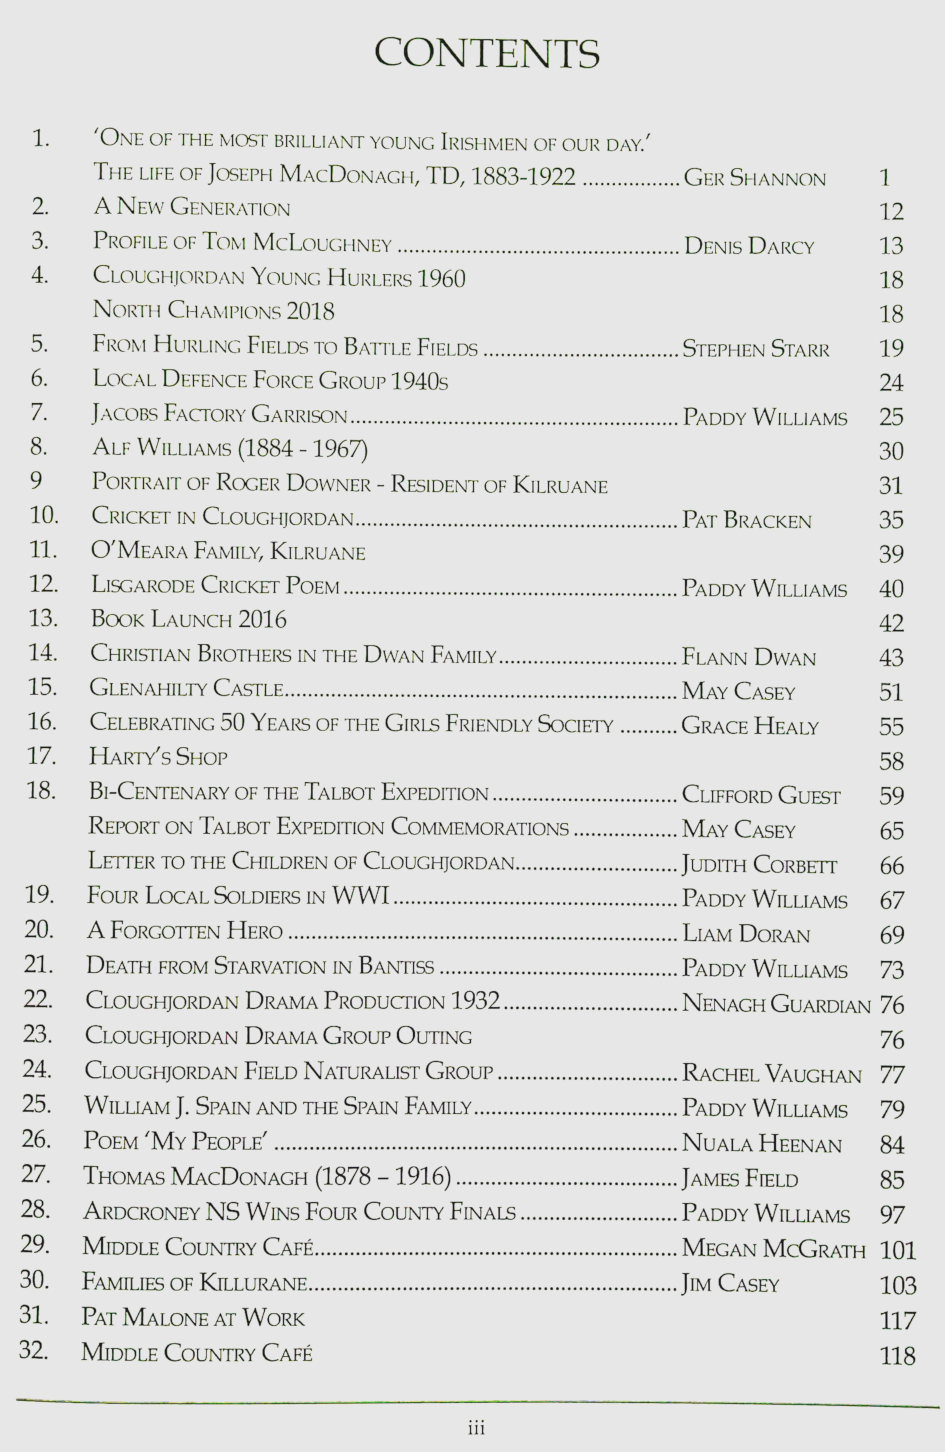 Contents listing of Cloughjordan Heritage: Vol. X 2018